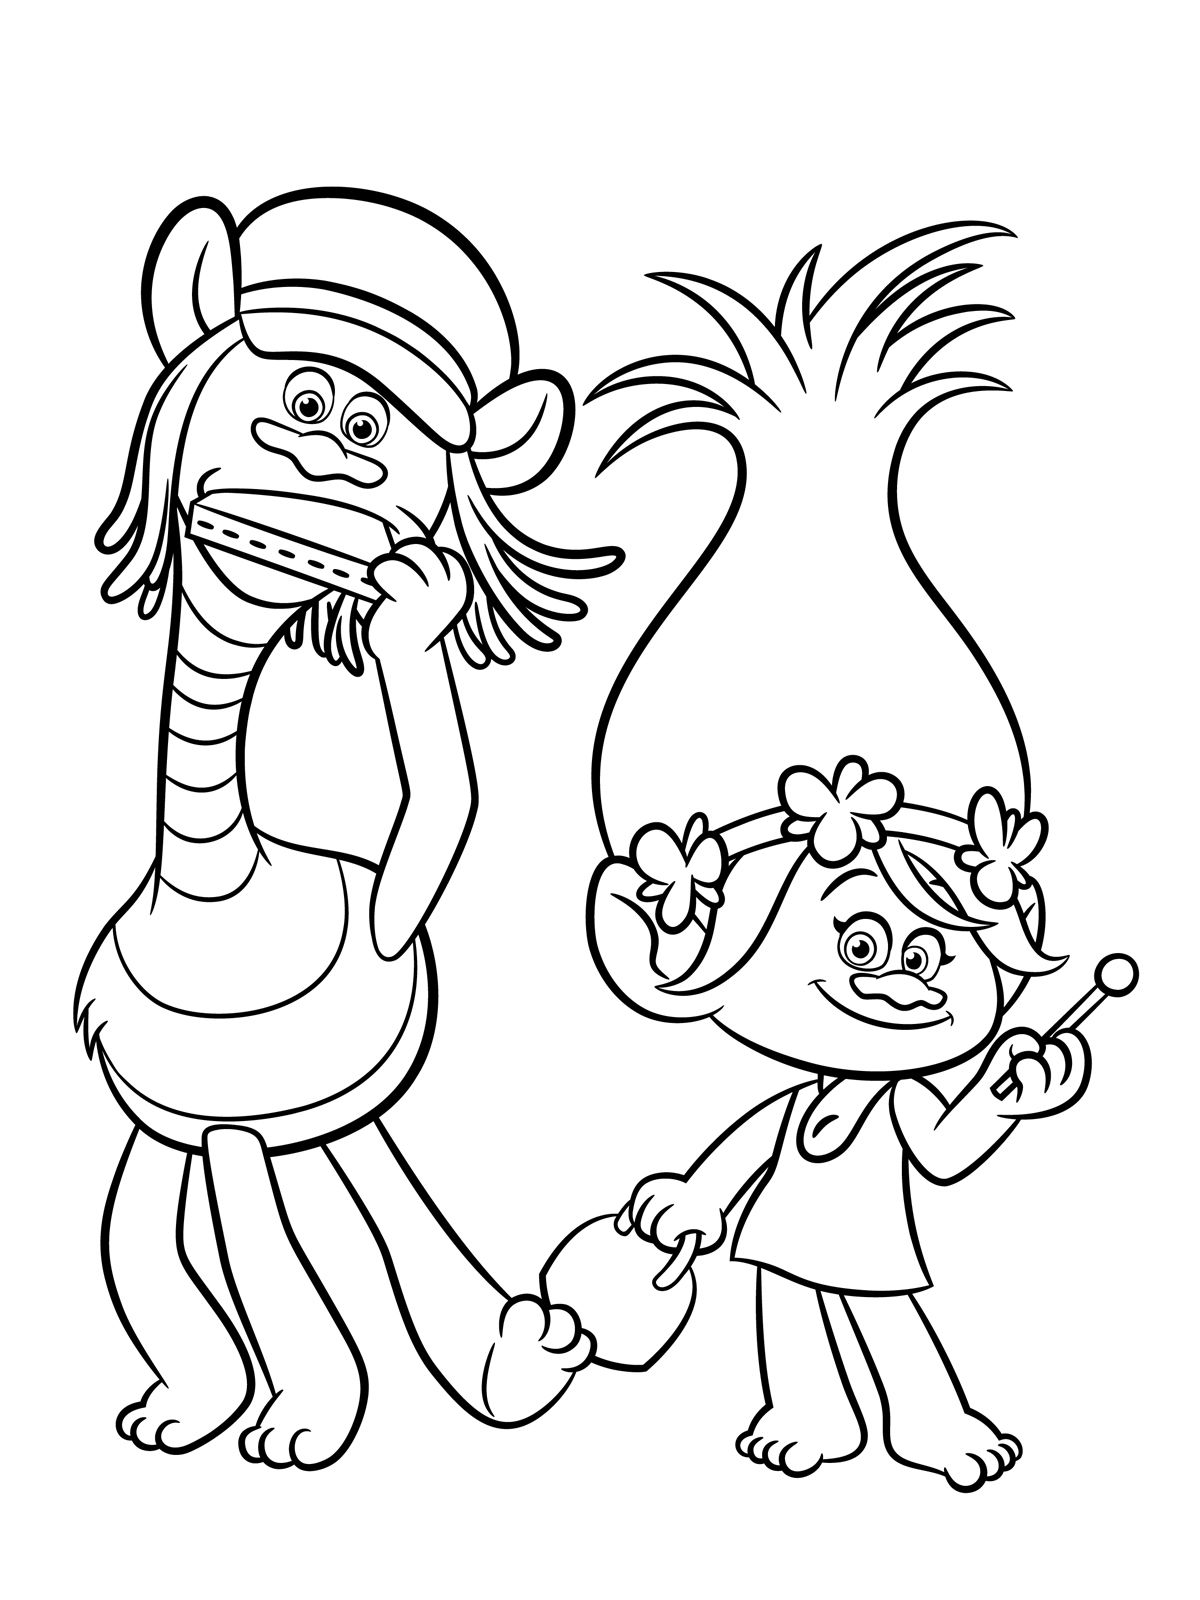 color pages printable disney coloring pages best coloring pages for kids color printable pages